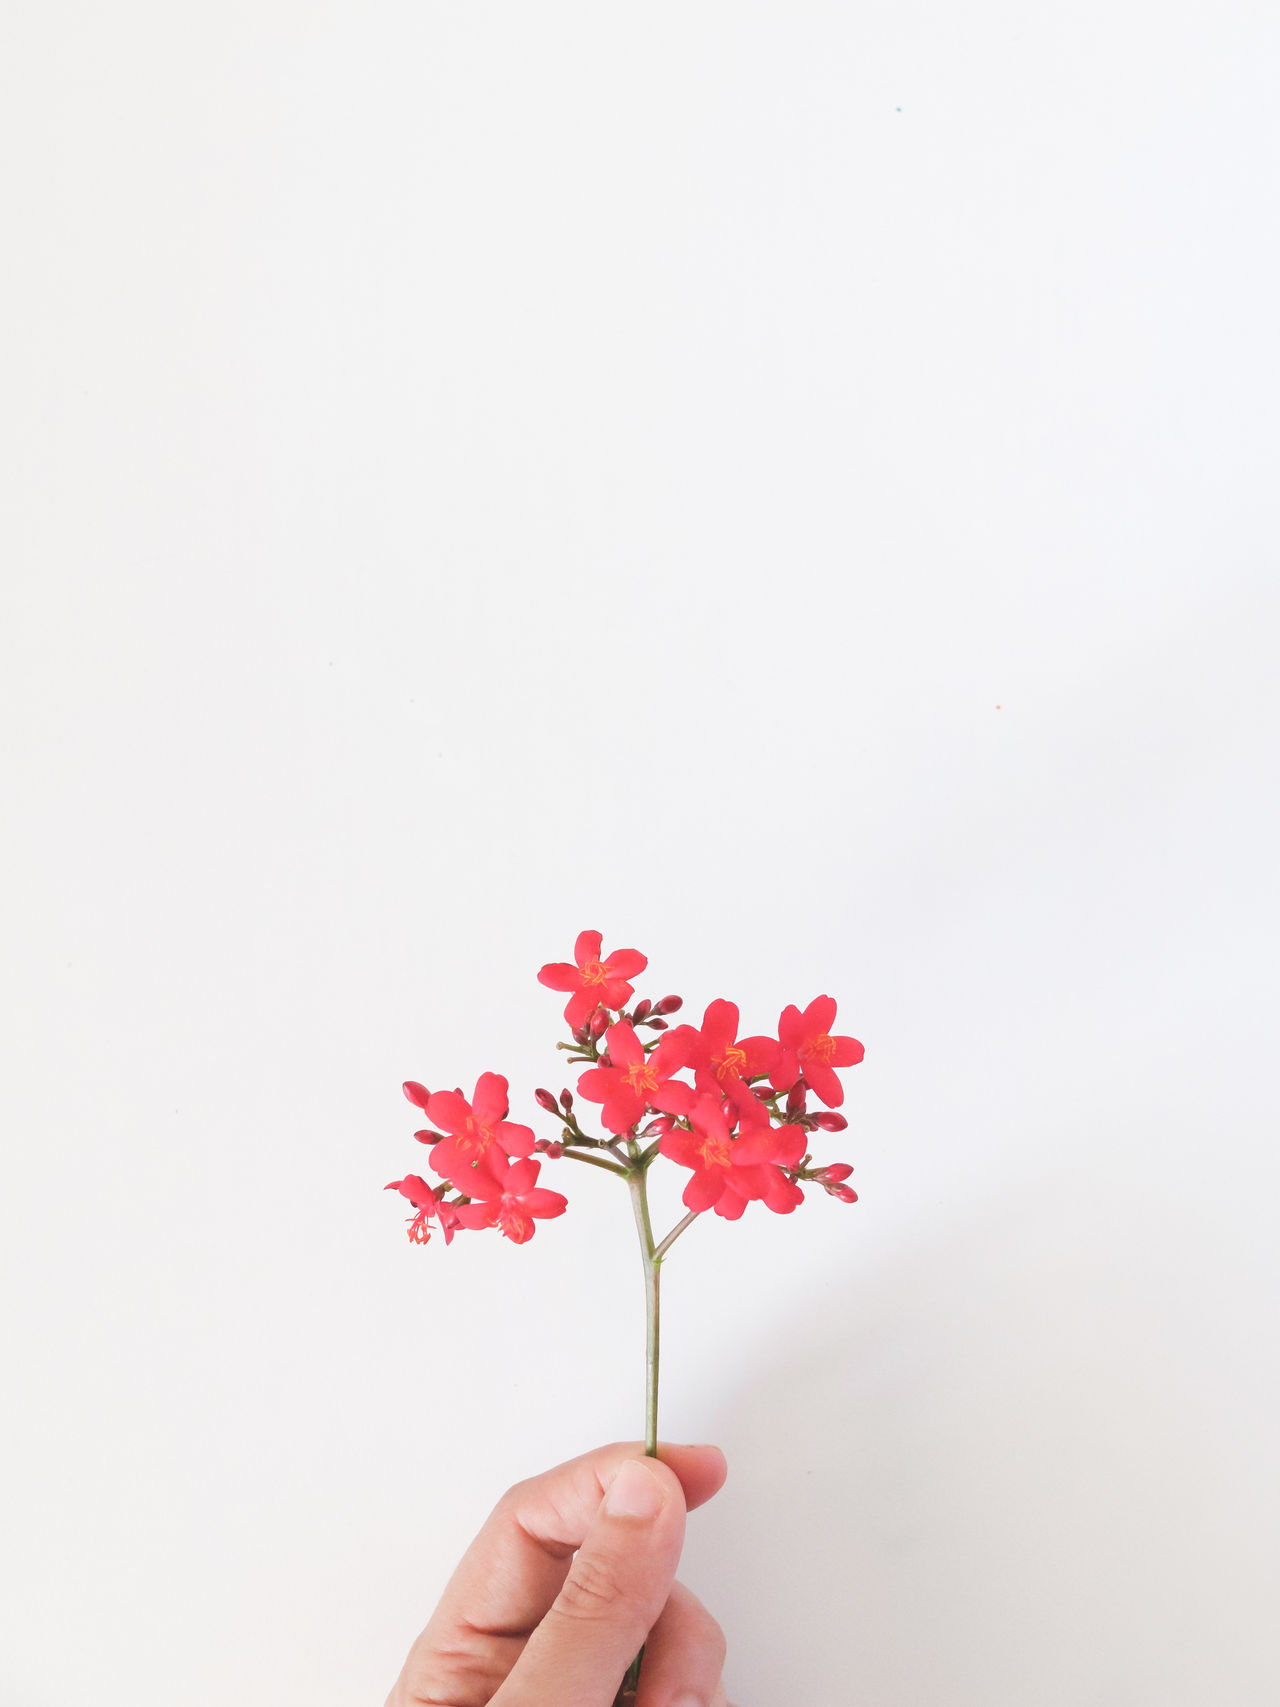 Close-up Copy Space Flower Flower Head Fragility Freshness Gift Holding Human Body Part Human Finger Human Hand Little Things One Person Real People Red Studio Shot White Background